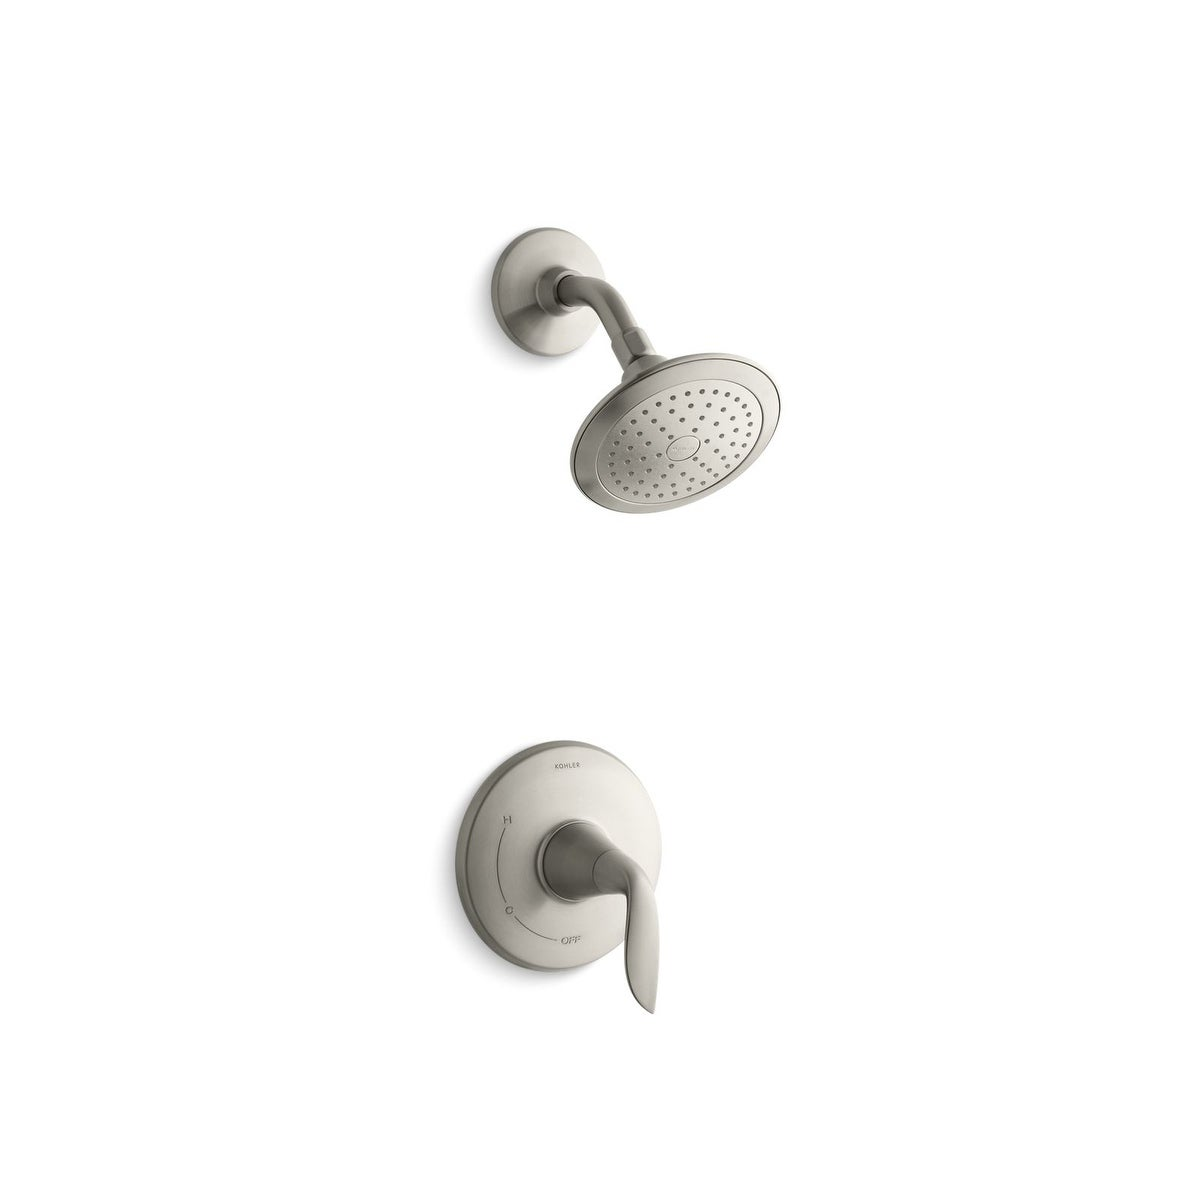 Shop The Best Deals on All Kohler Products - Overstock.com